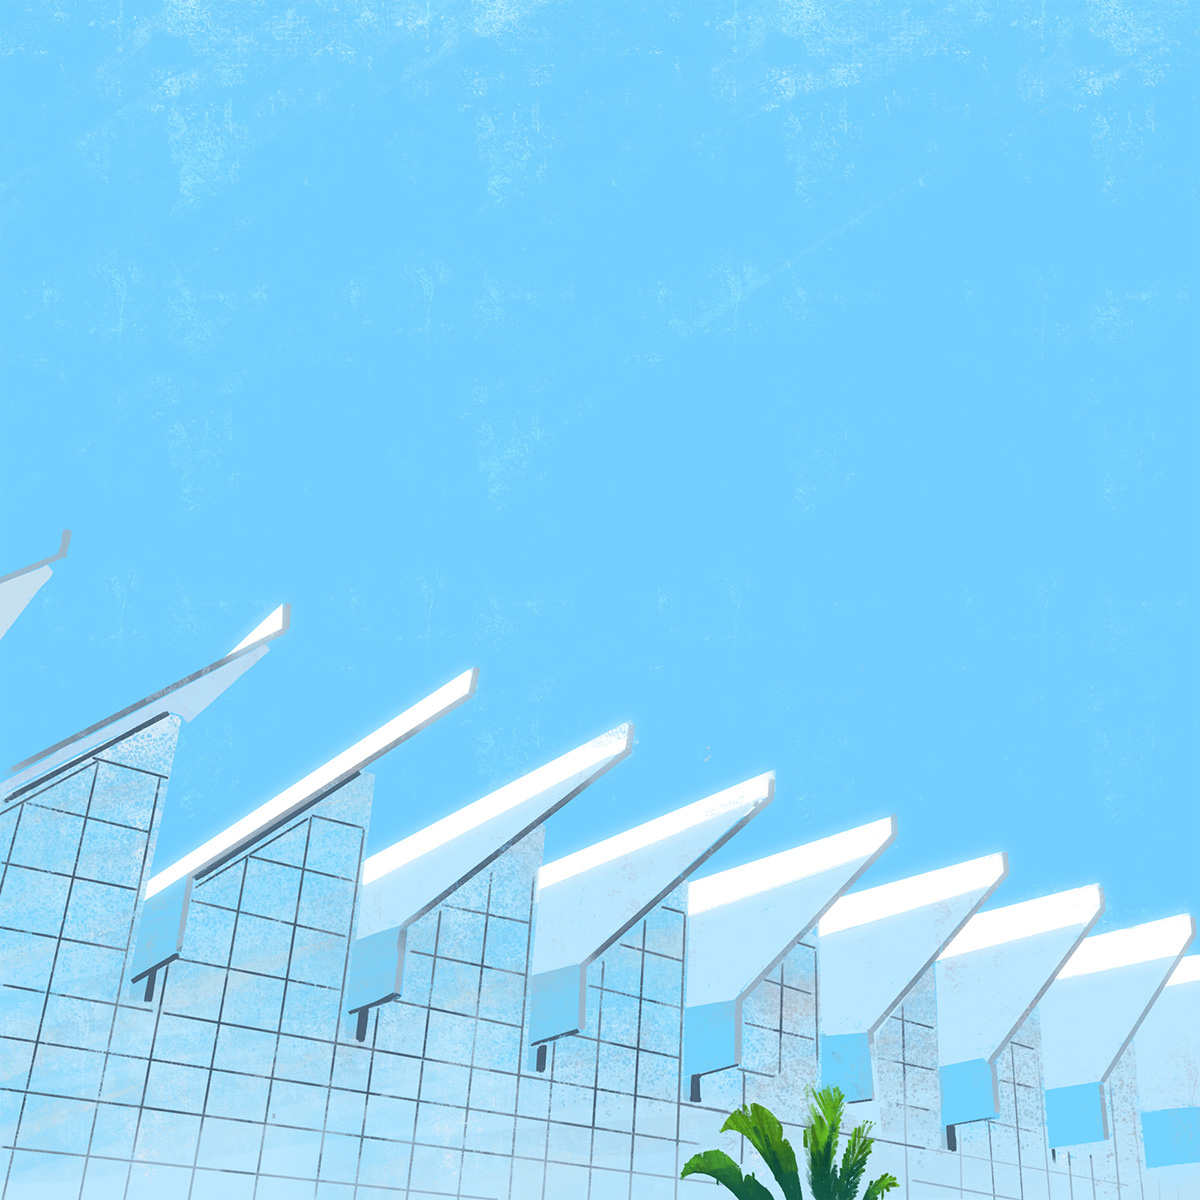 Architectual Illustrations Minimalist Architectural Illustrations Of Californian